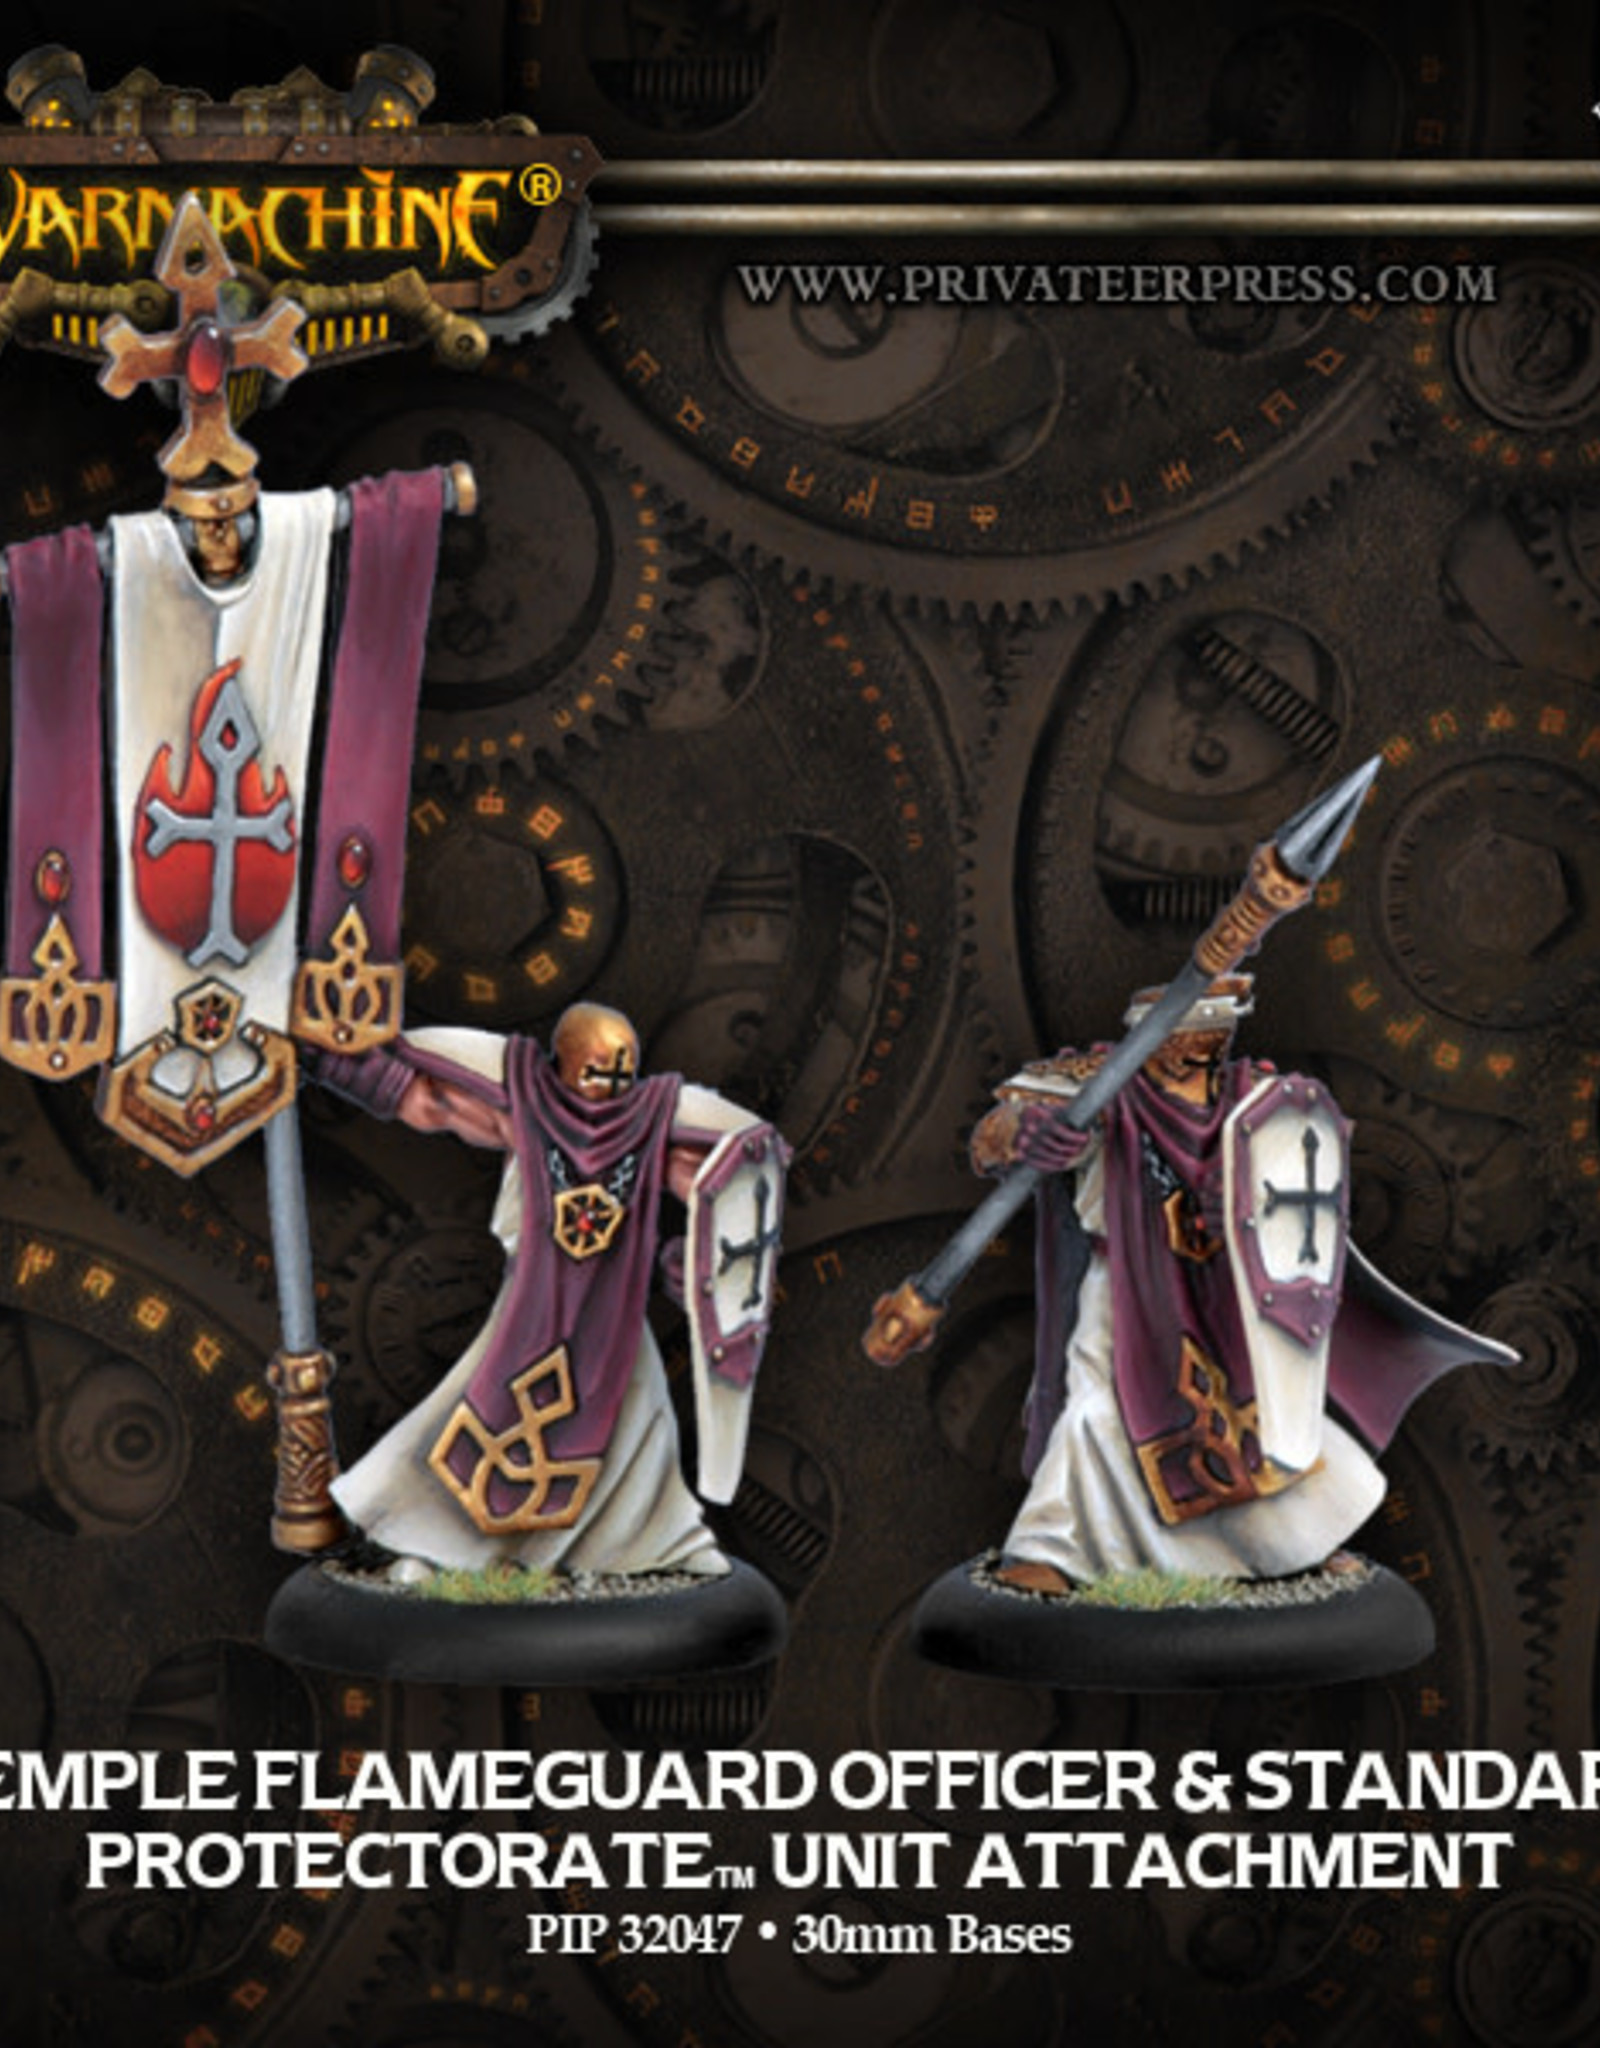 Warmachine Protectorate - Temple Flameguard Officer & Standard